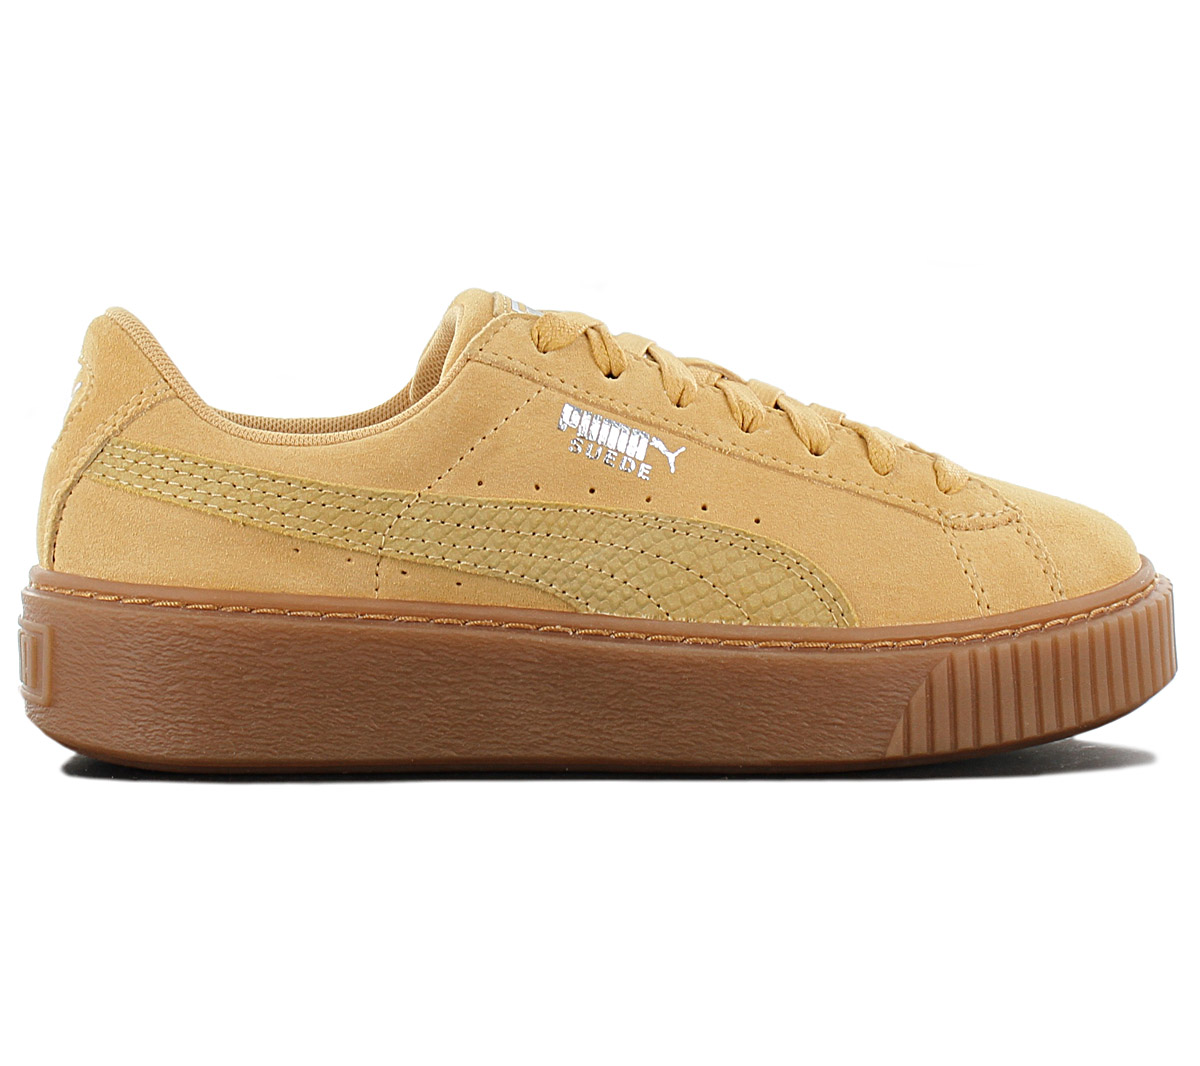 reputable site 31d4f 12b30 Details about Puma Suede Platform Animal Women's Sneaker 365109-04 Brown  Trainers New